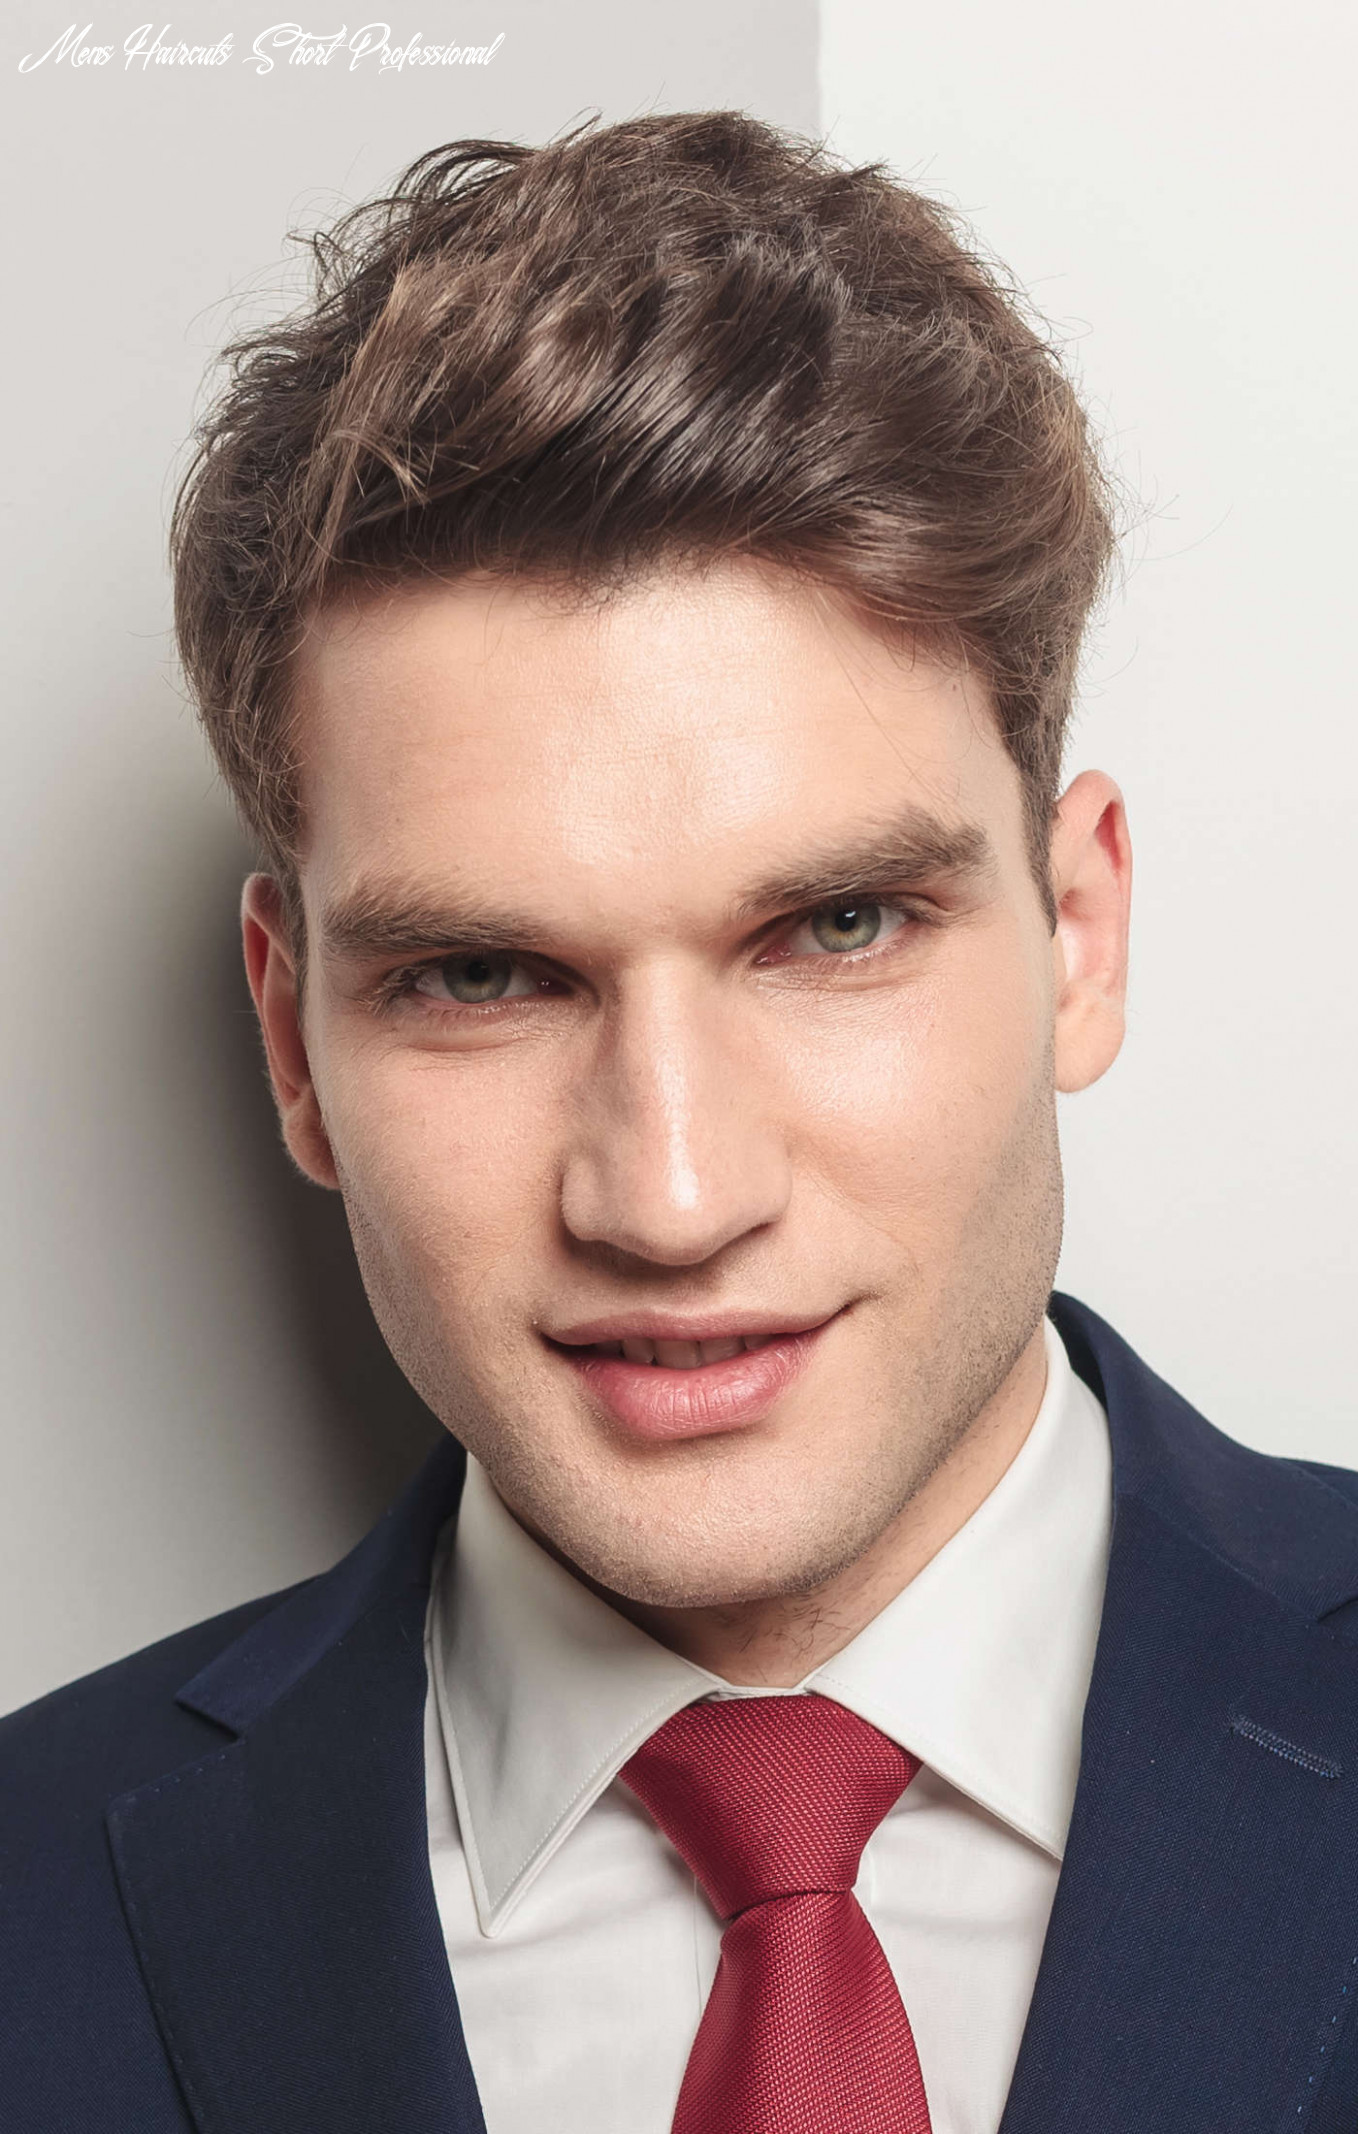 Top 8 business hairstyles for men mens haircuts short professional